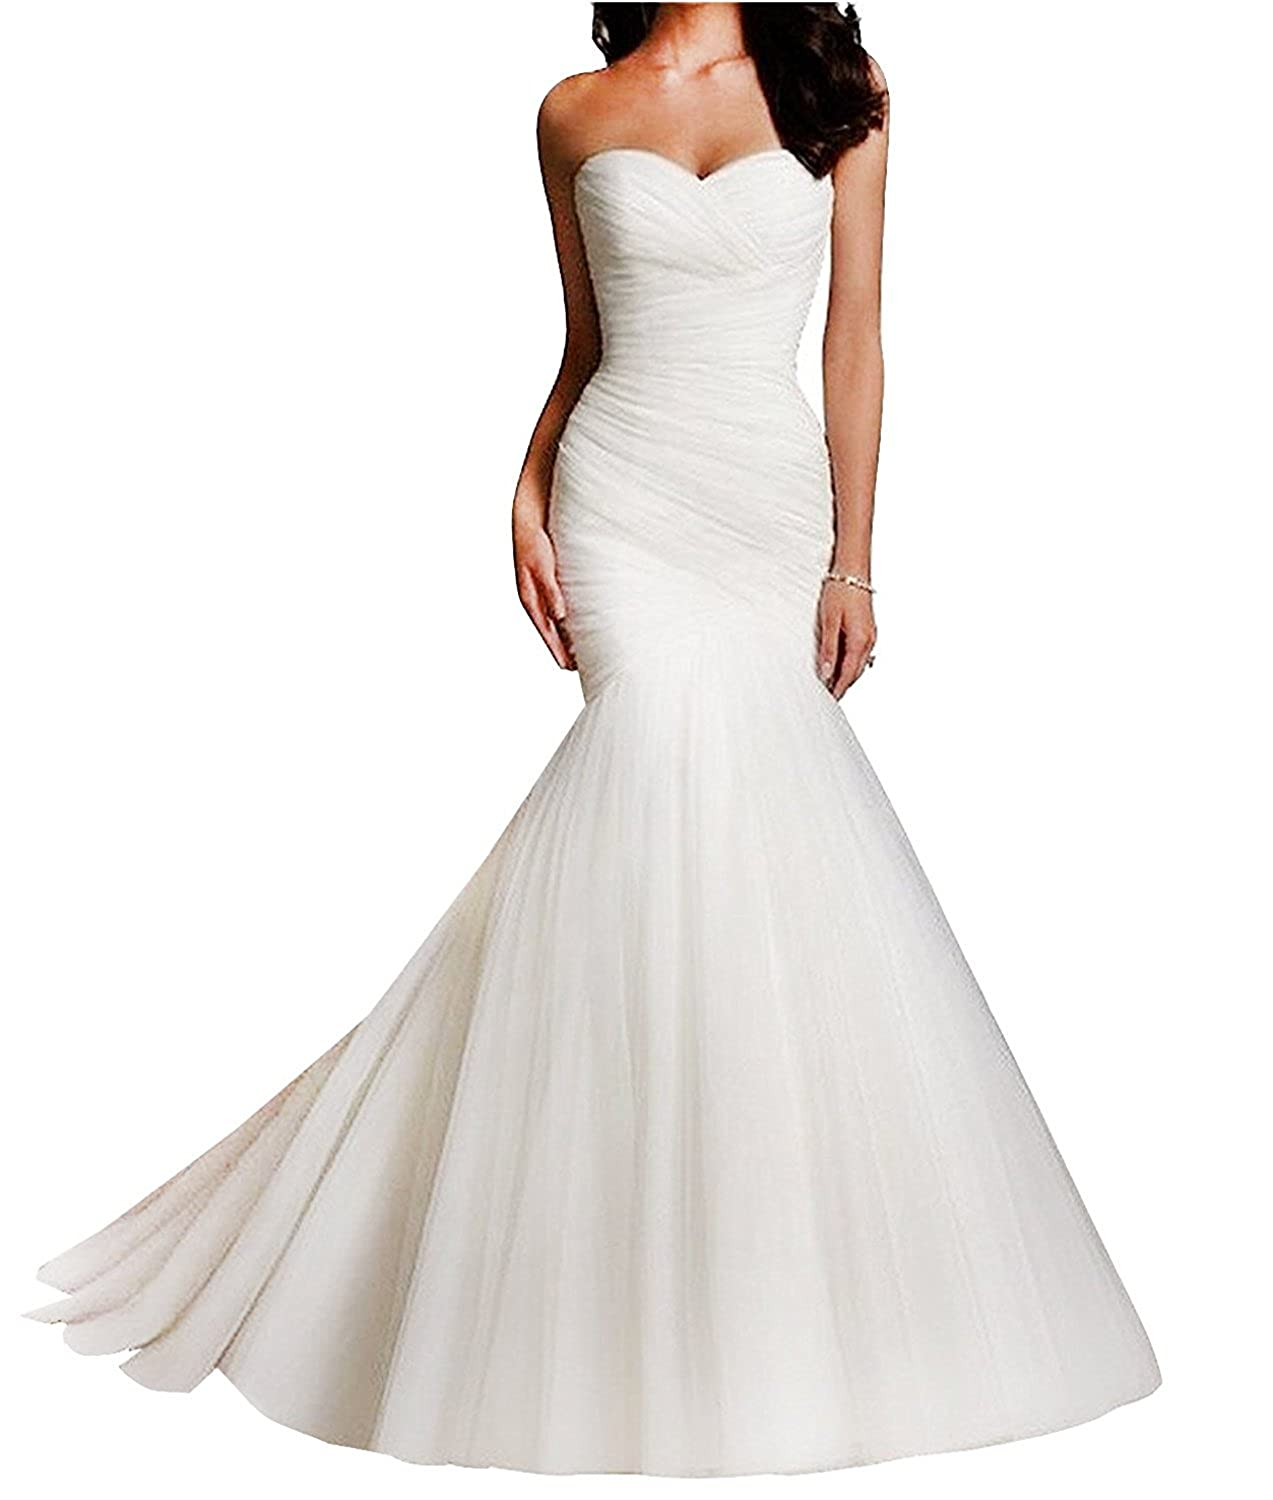 White Fannybrides Women Tulle Mermaid Sweetheart Wedding Dresses Bridal Formal Dress